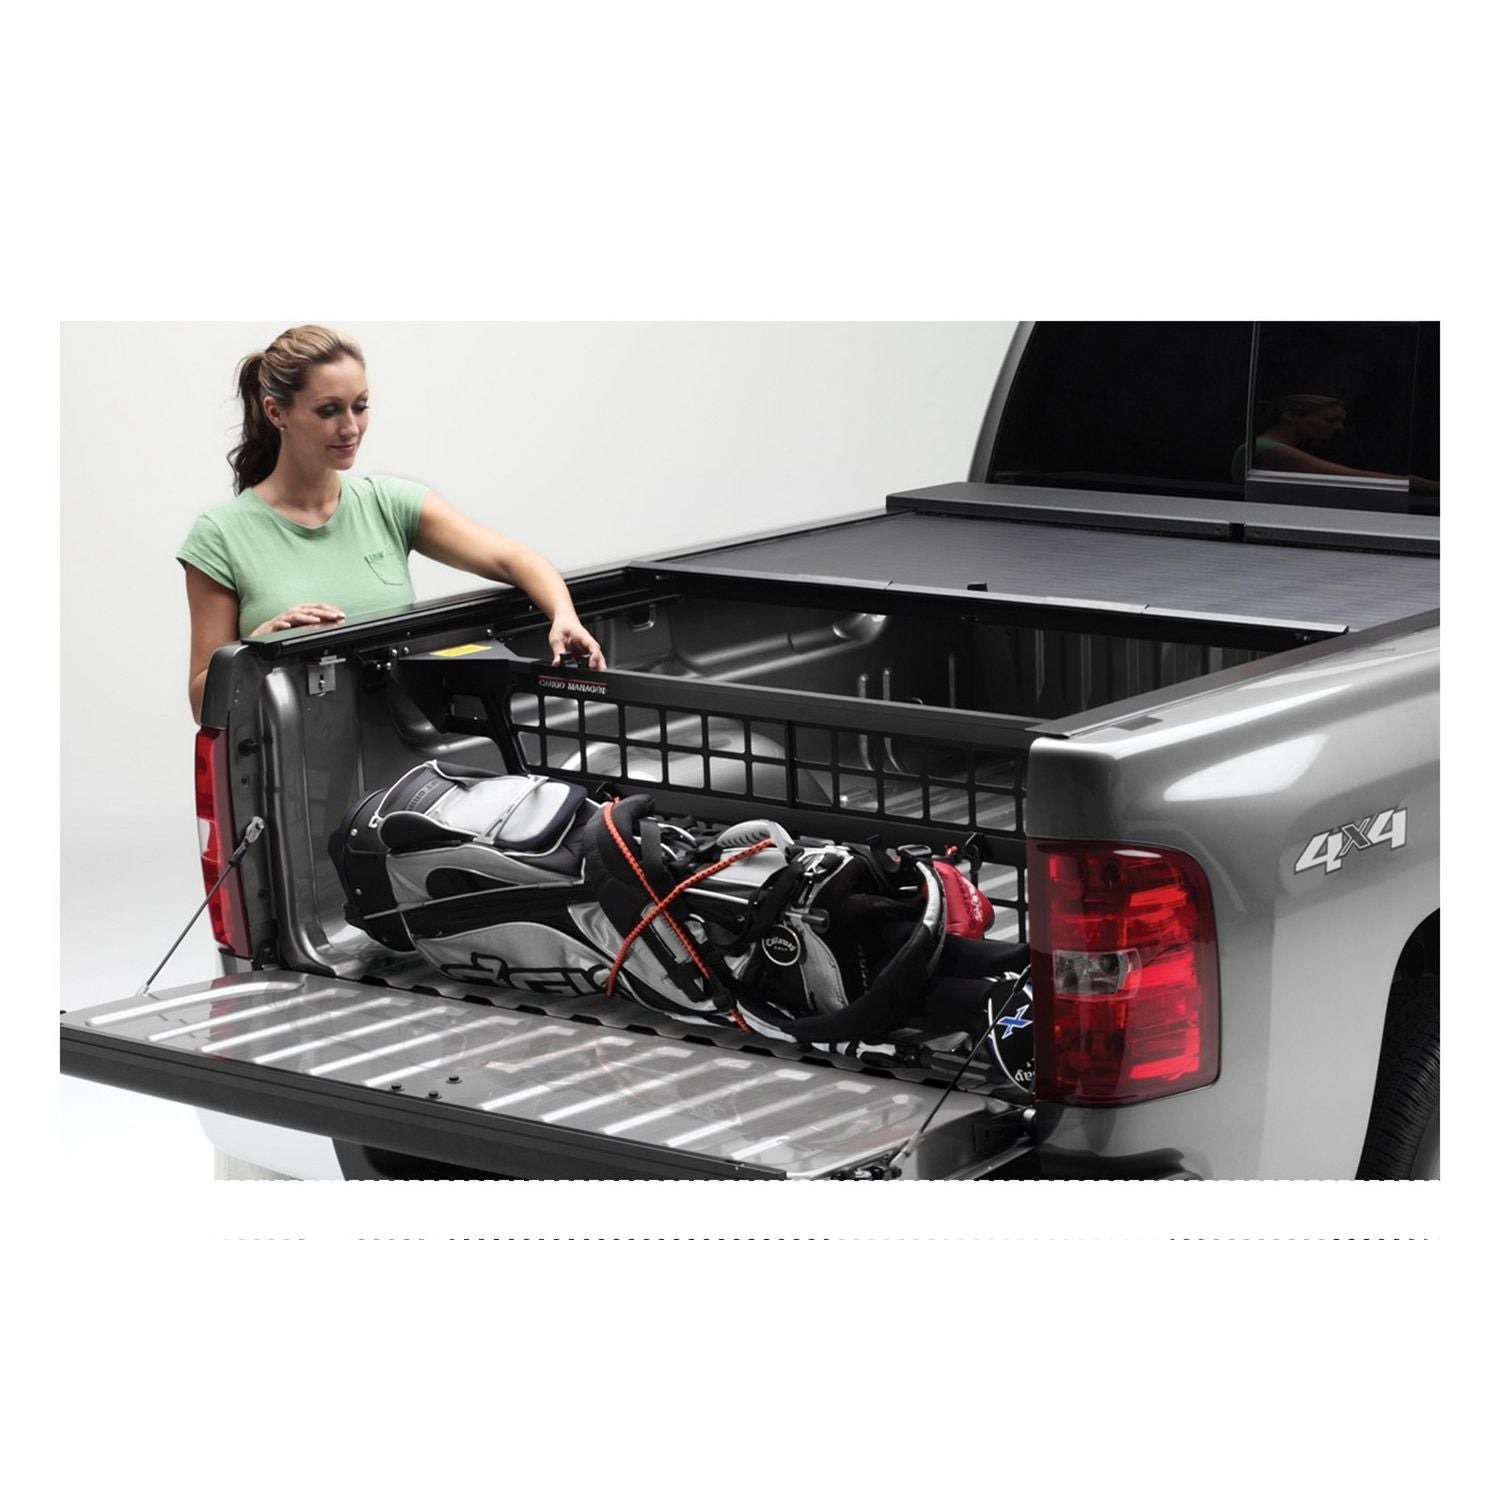 Roll-N-Lock CM456 Cargo Manager Rolling Truck Bed Divider Works Only with Roll-N-Lock Covers for 2012-2018 Dodge Ram w/RamBox | Fits 6.4 Ft. Bed